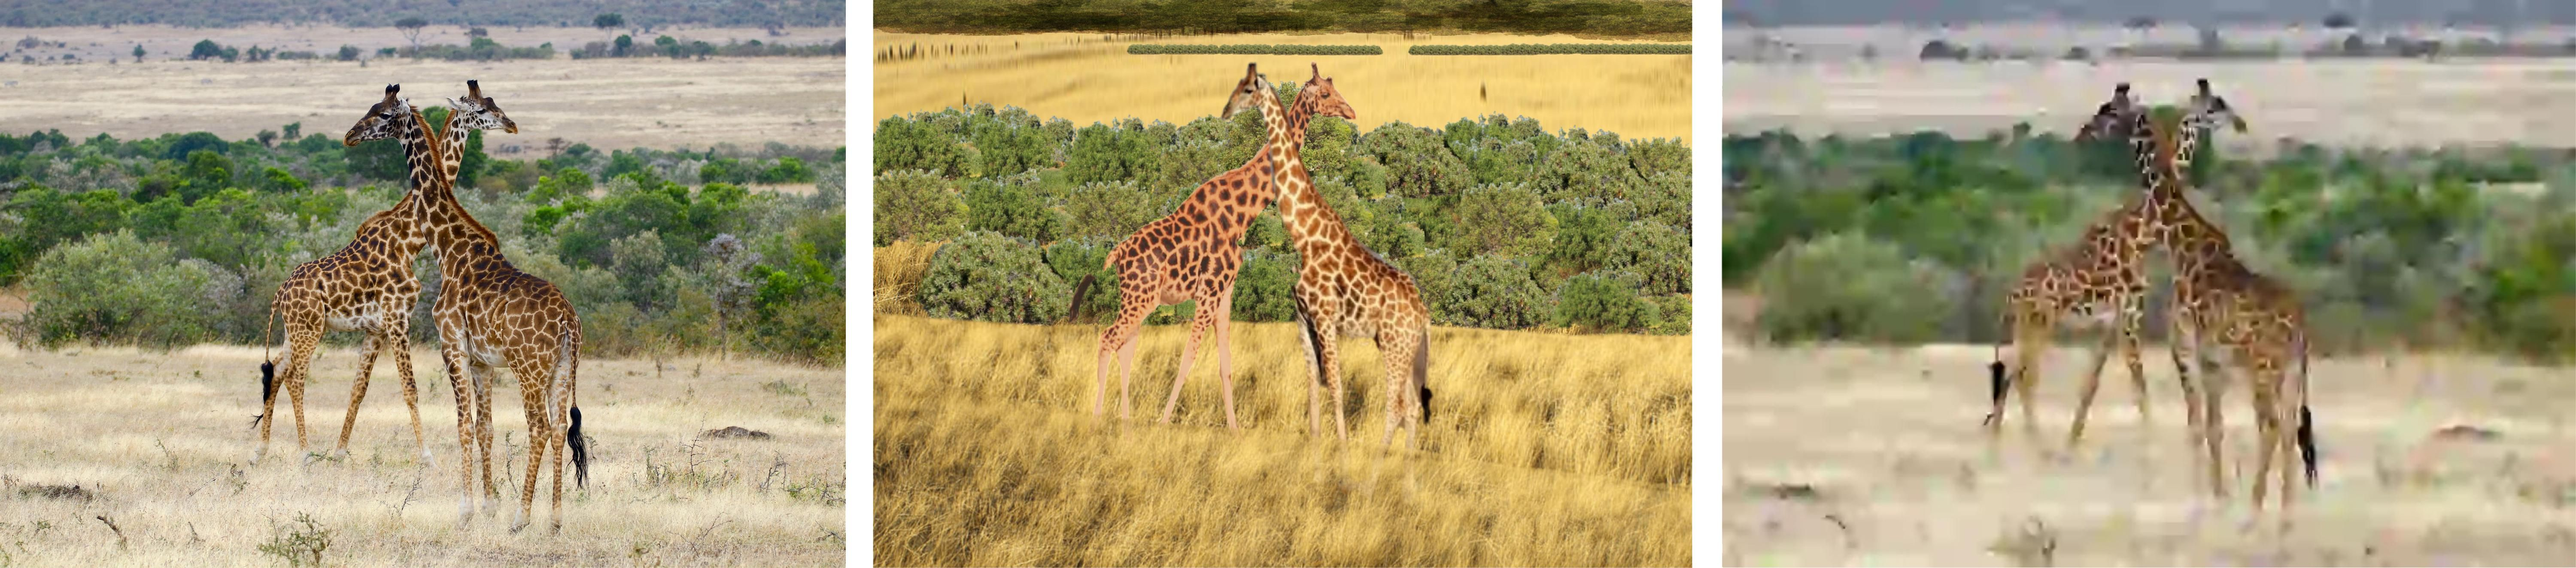 Three images showing two giraffes in each